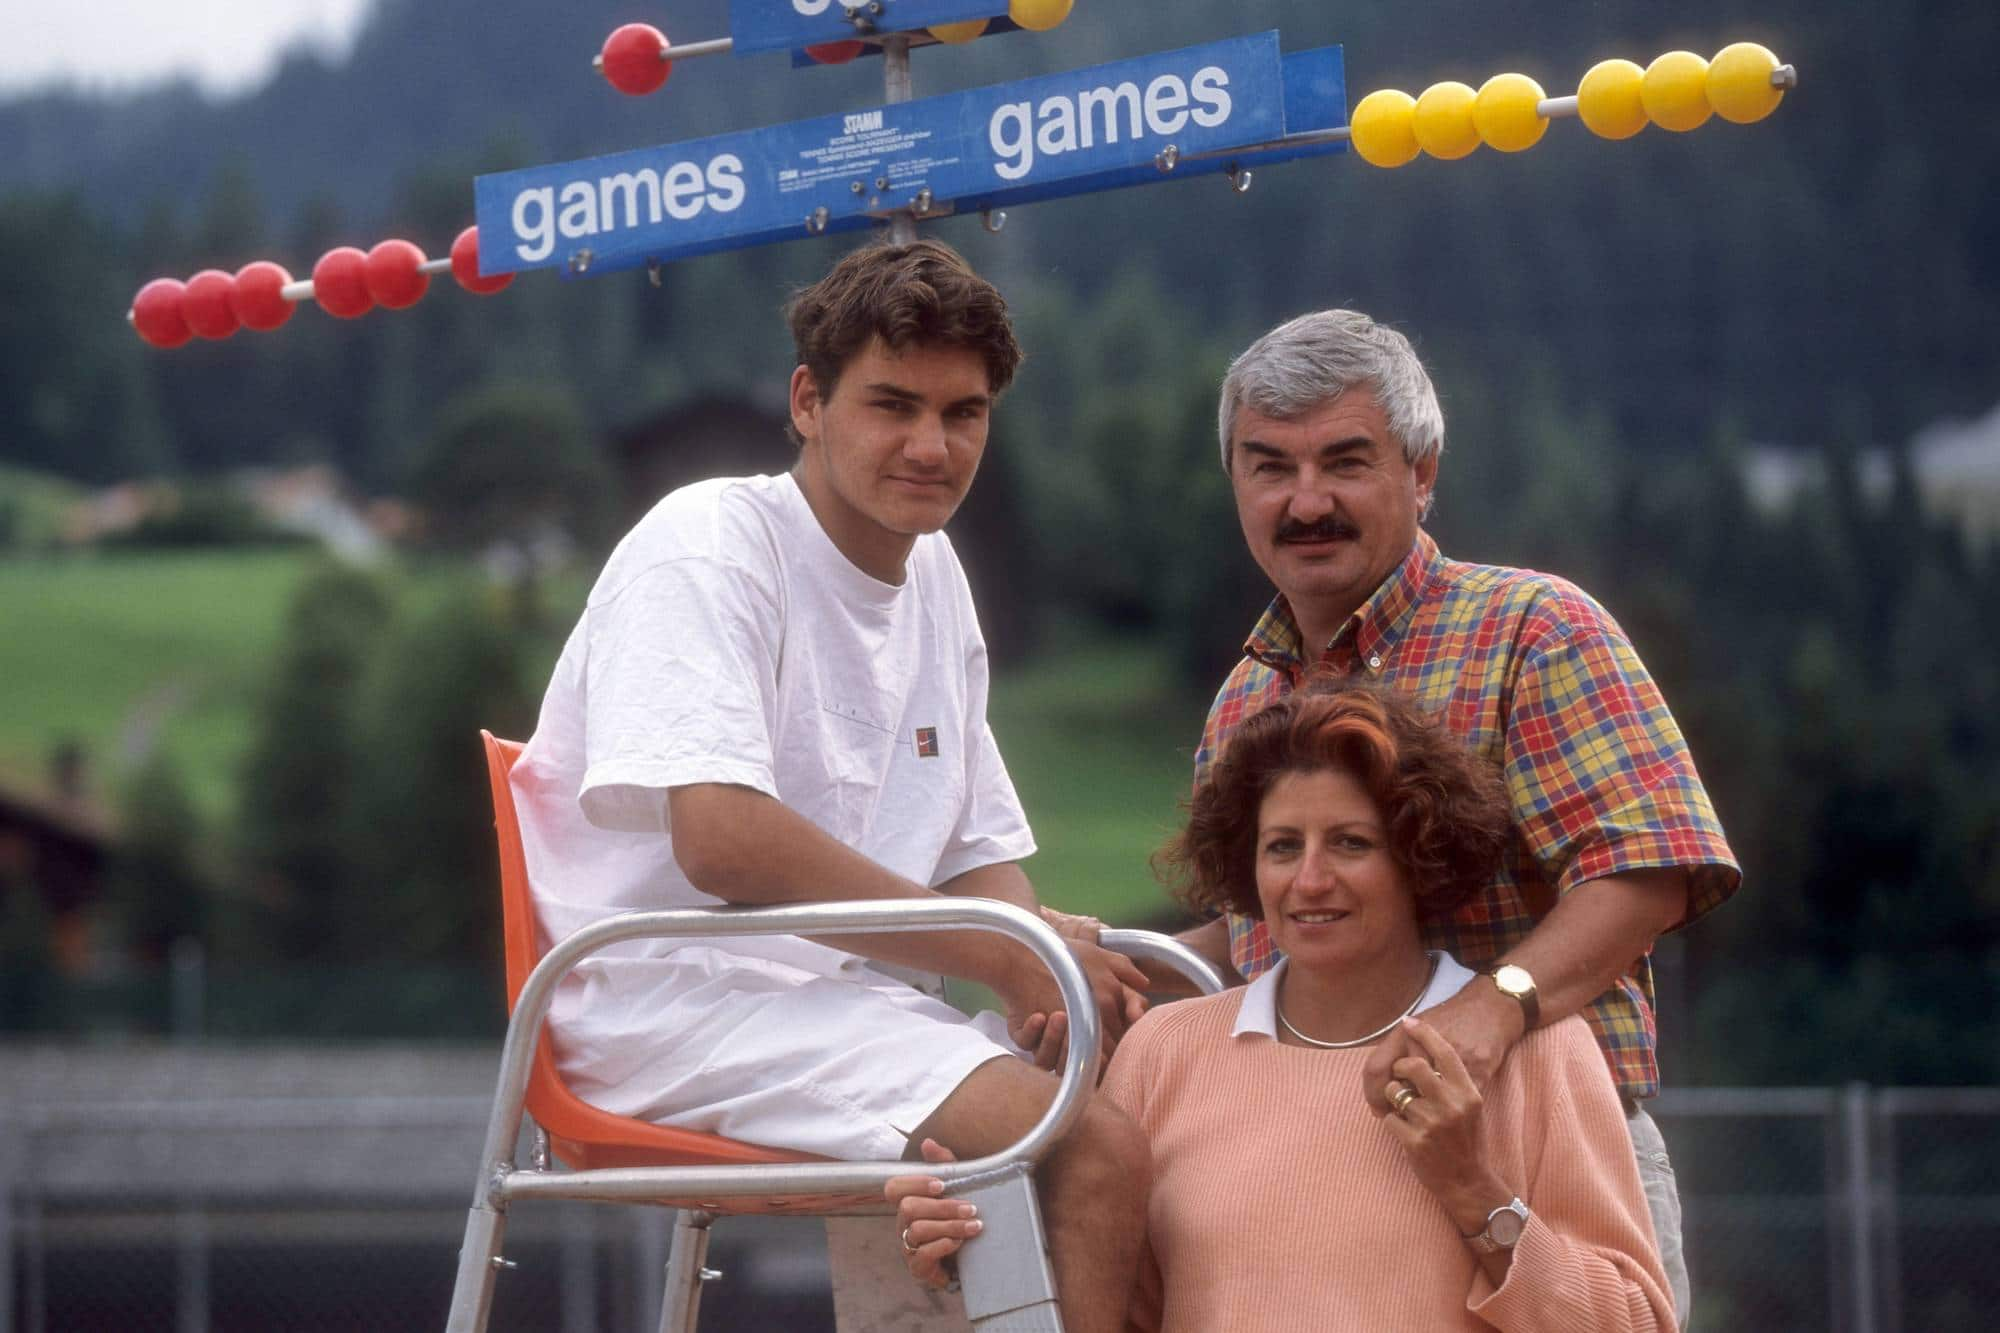 Roger Federer (SUI) mit Eltern Robert und Lynette